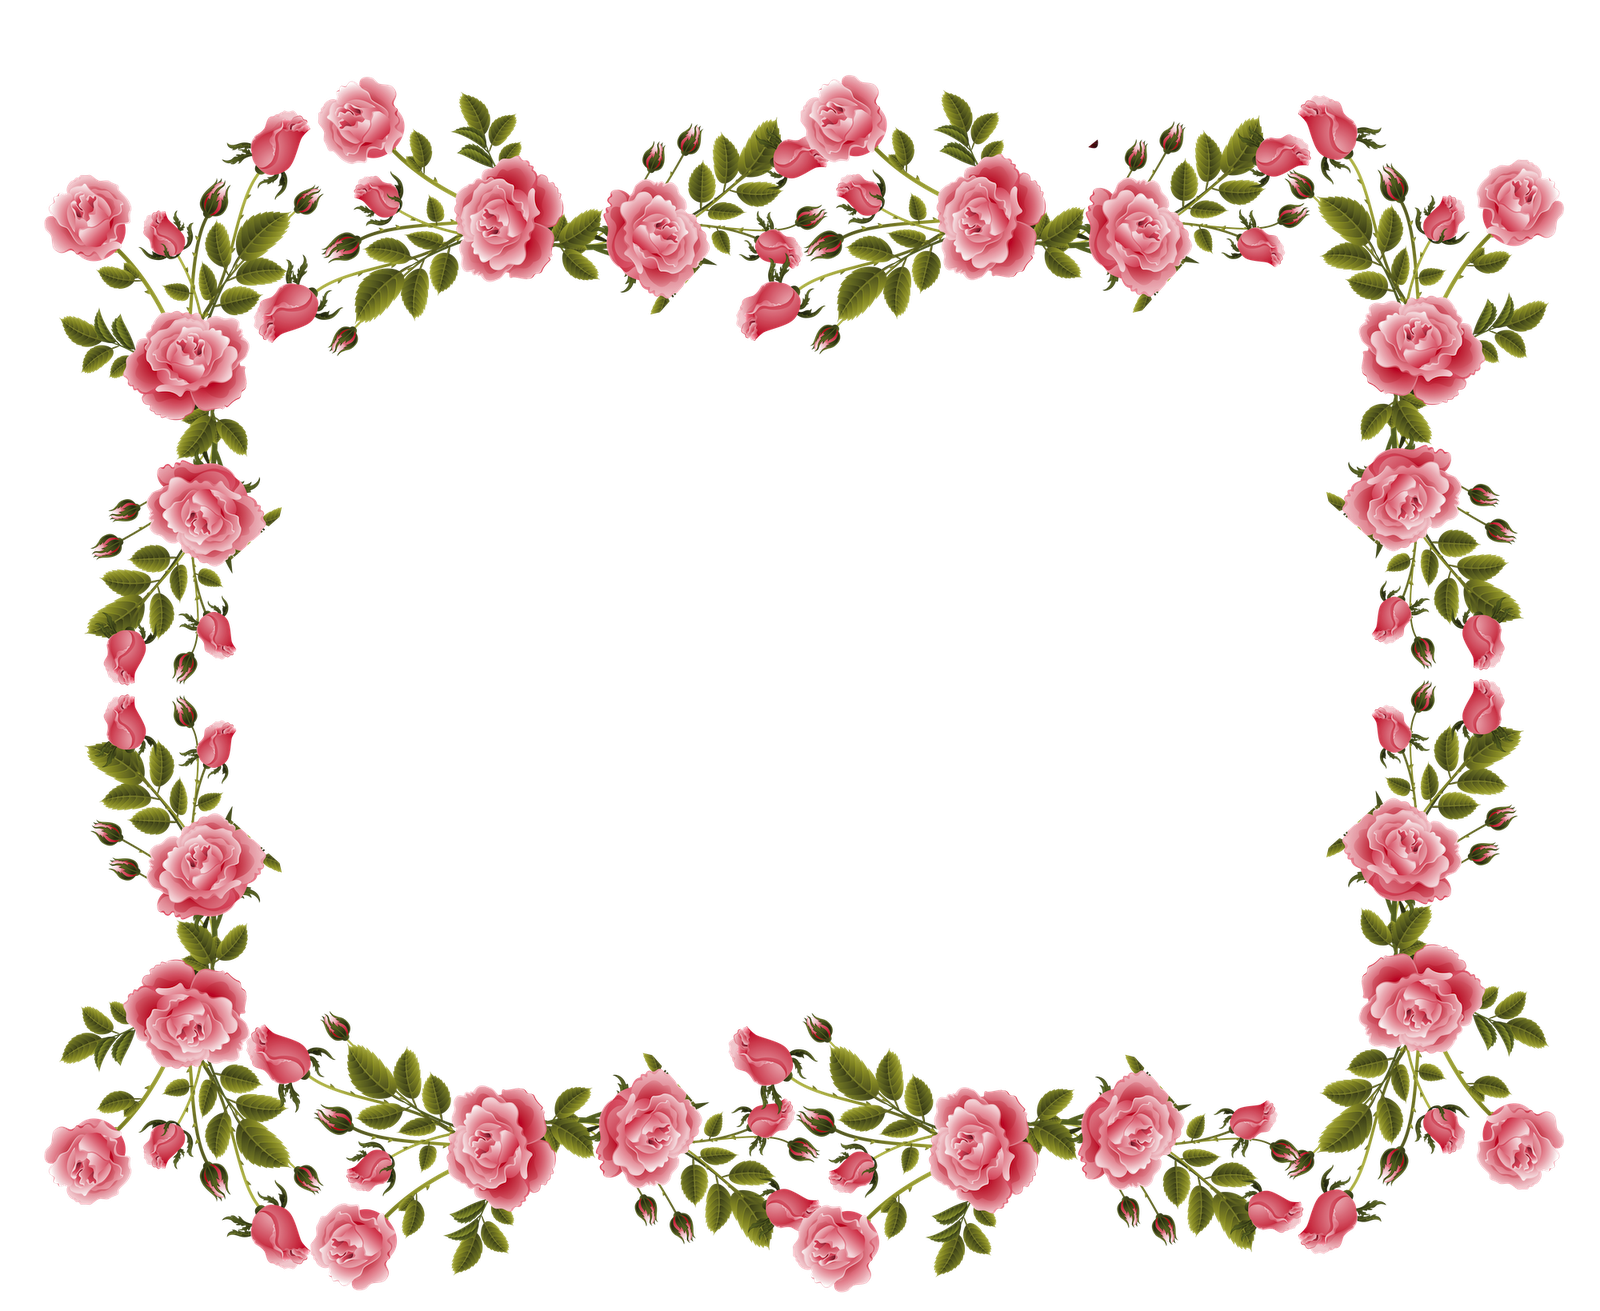 Clipart Flower Border Clipart Panda Rose pink rose border png border clipart  png free clip art images freeclipartpw pink roses decoration this image as  ClipartLook.com